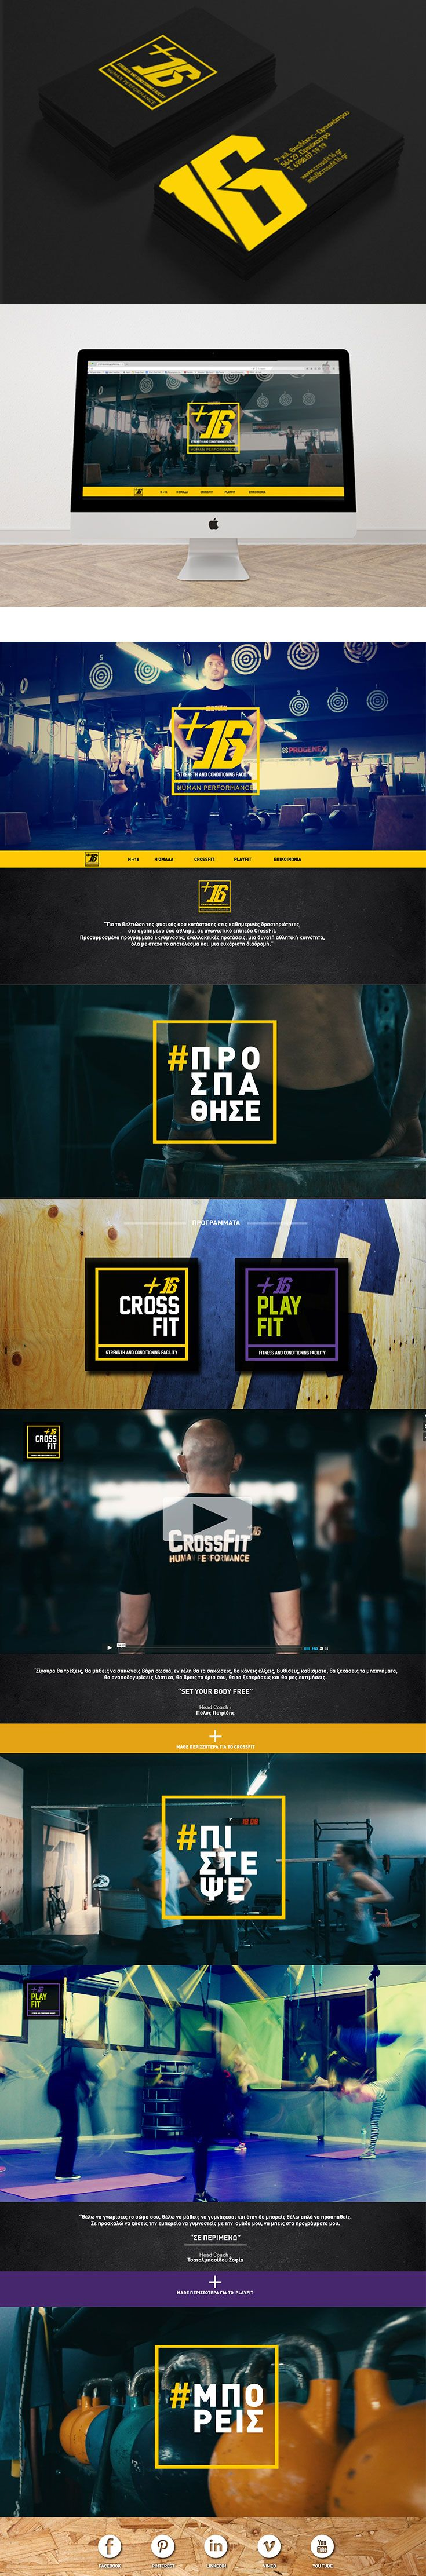 +16 crossfit team, webdesign and business cards design